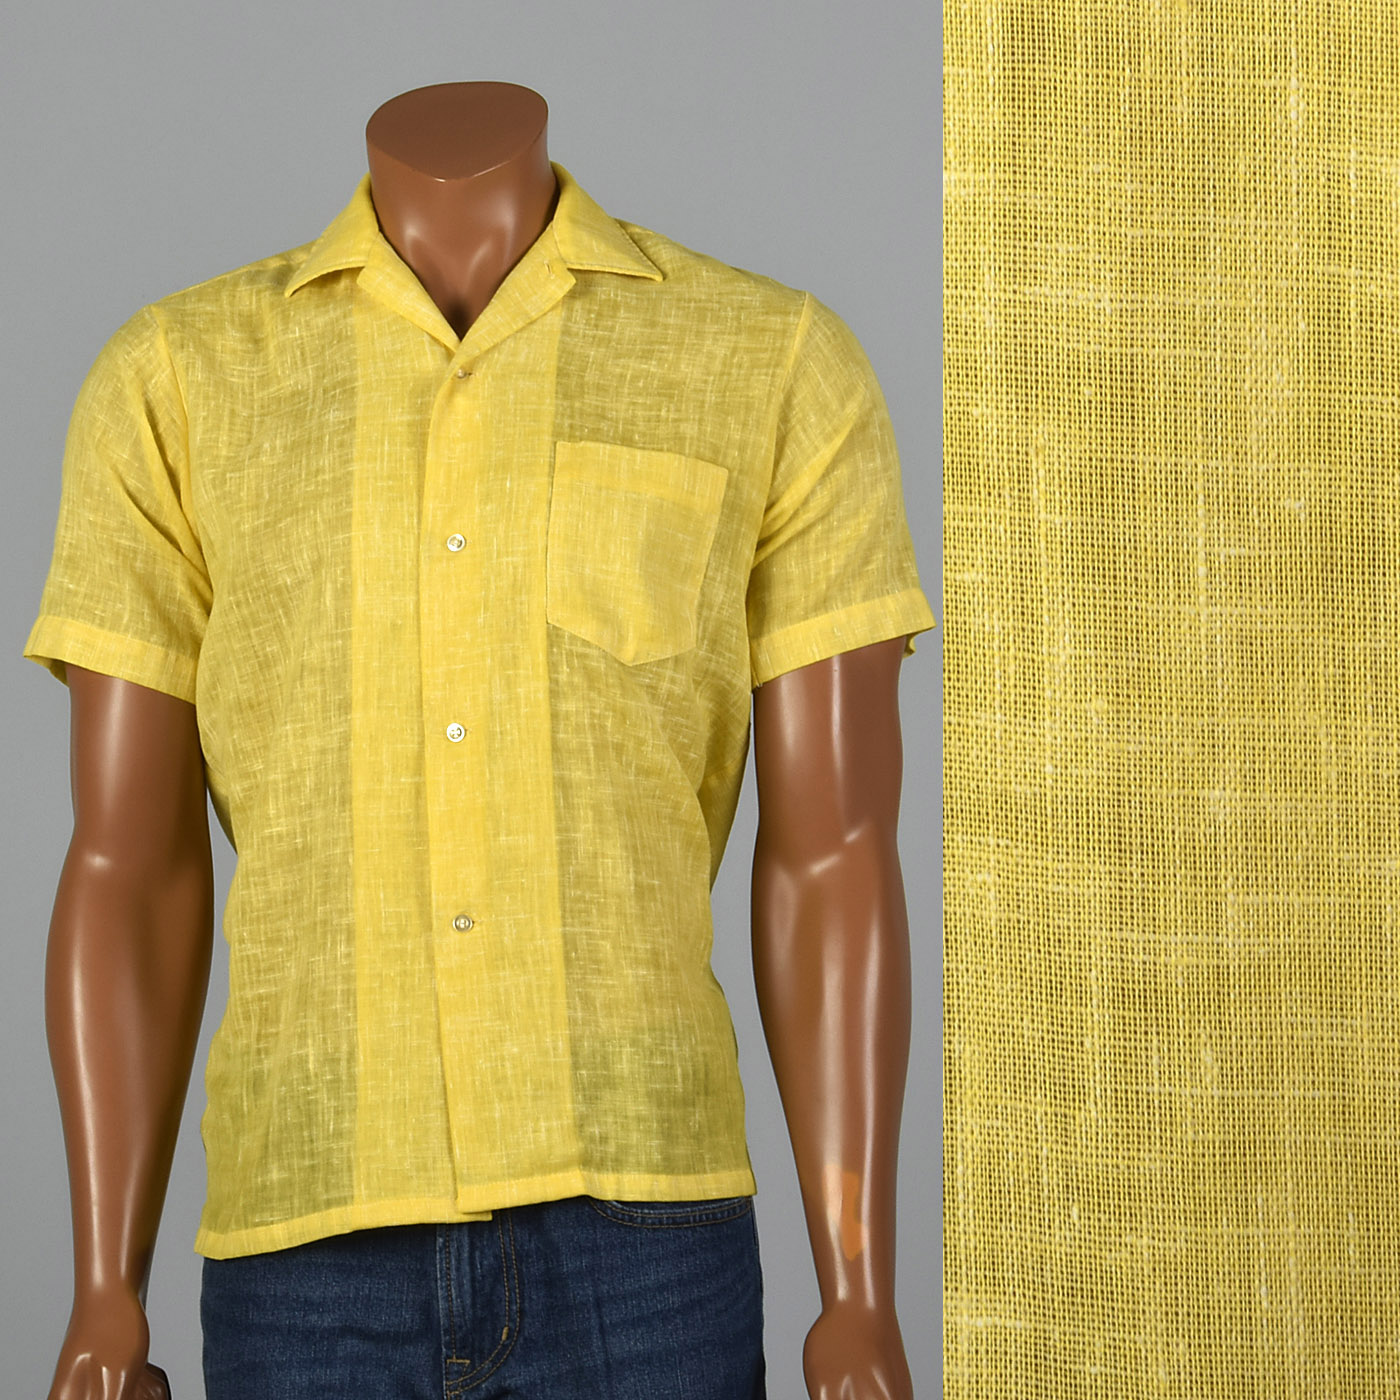 1960s Mens Yellow Semi Sheer Short Sleeve Shirt